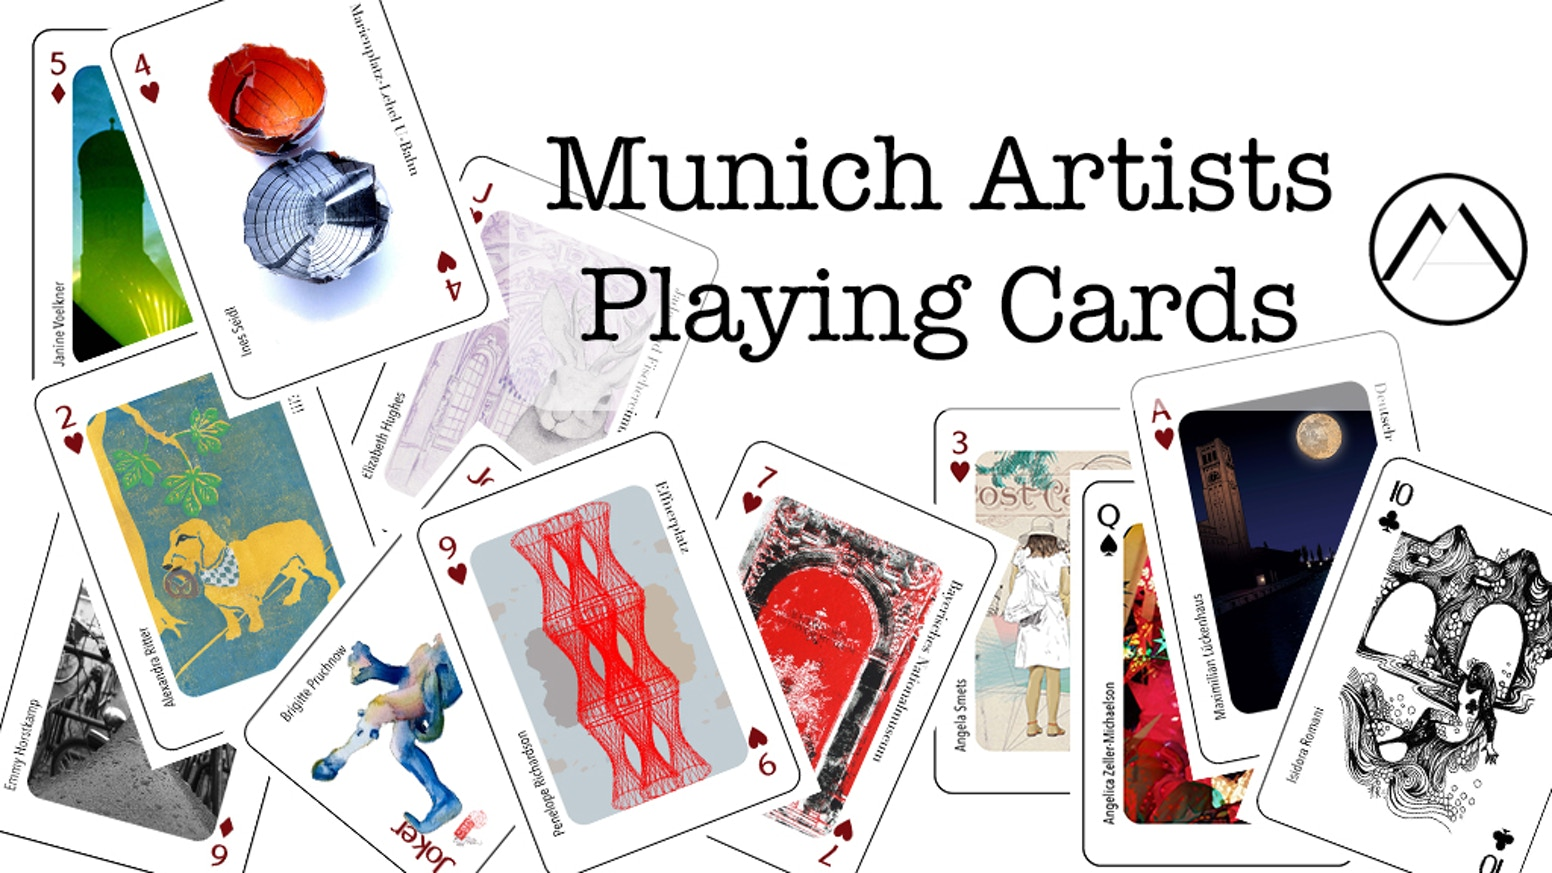 Munich Artists designed a Munich themed poker playing card deck celebrating Munich and Bavarian life.